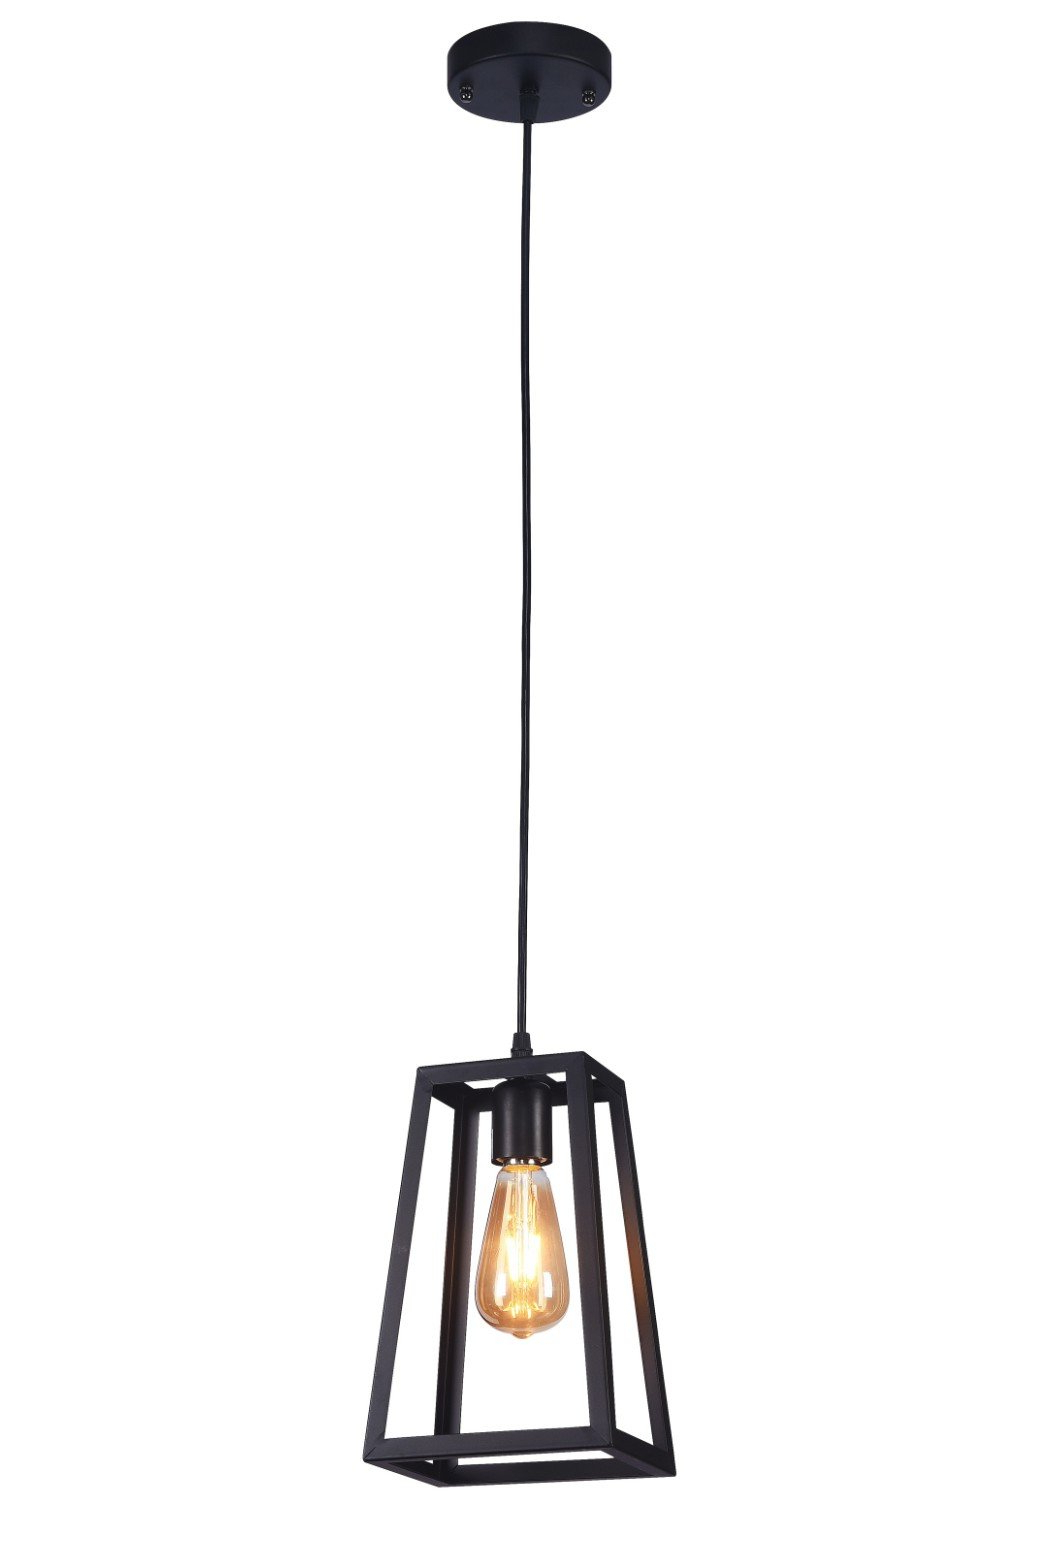 Cabott 1 Light Square/rectangle Pendant Pertaining To Best And Newest Nolan 1 Light Lantern Chandeliers (View 3 of 25)